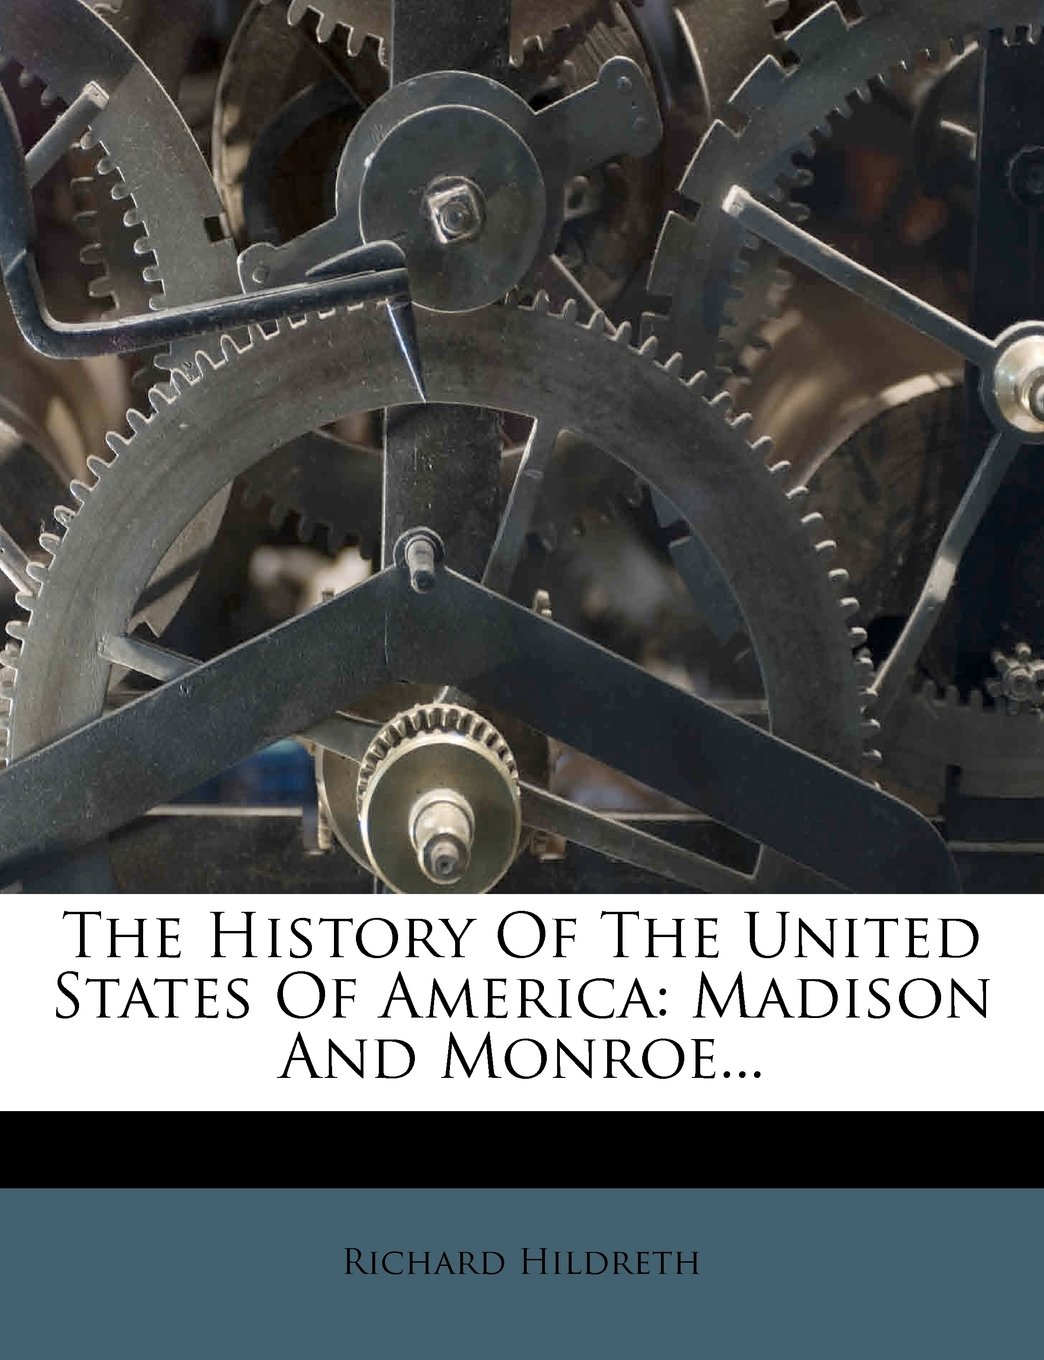 Download The History Of The United States Of America: Madison And Monroe... pdf